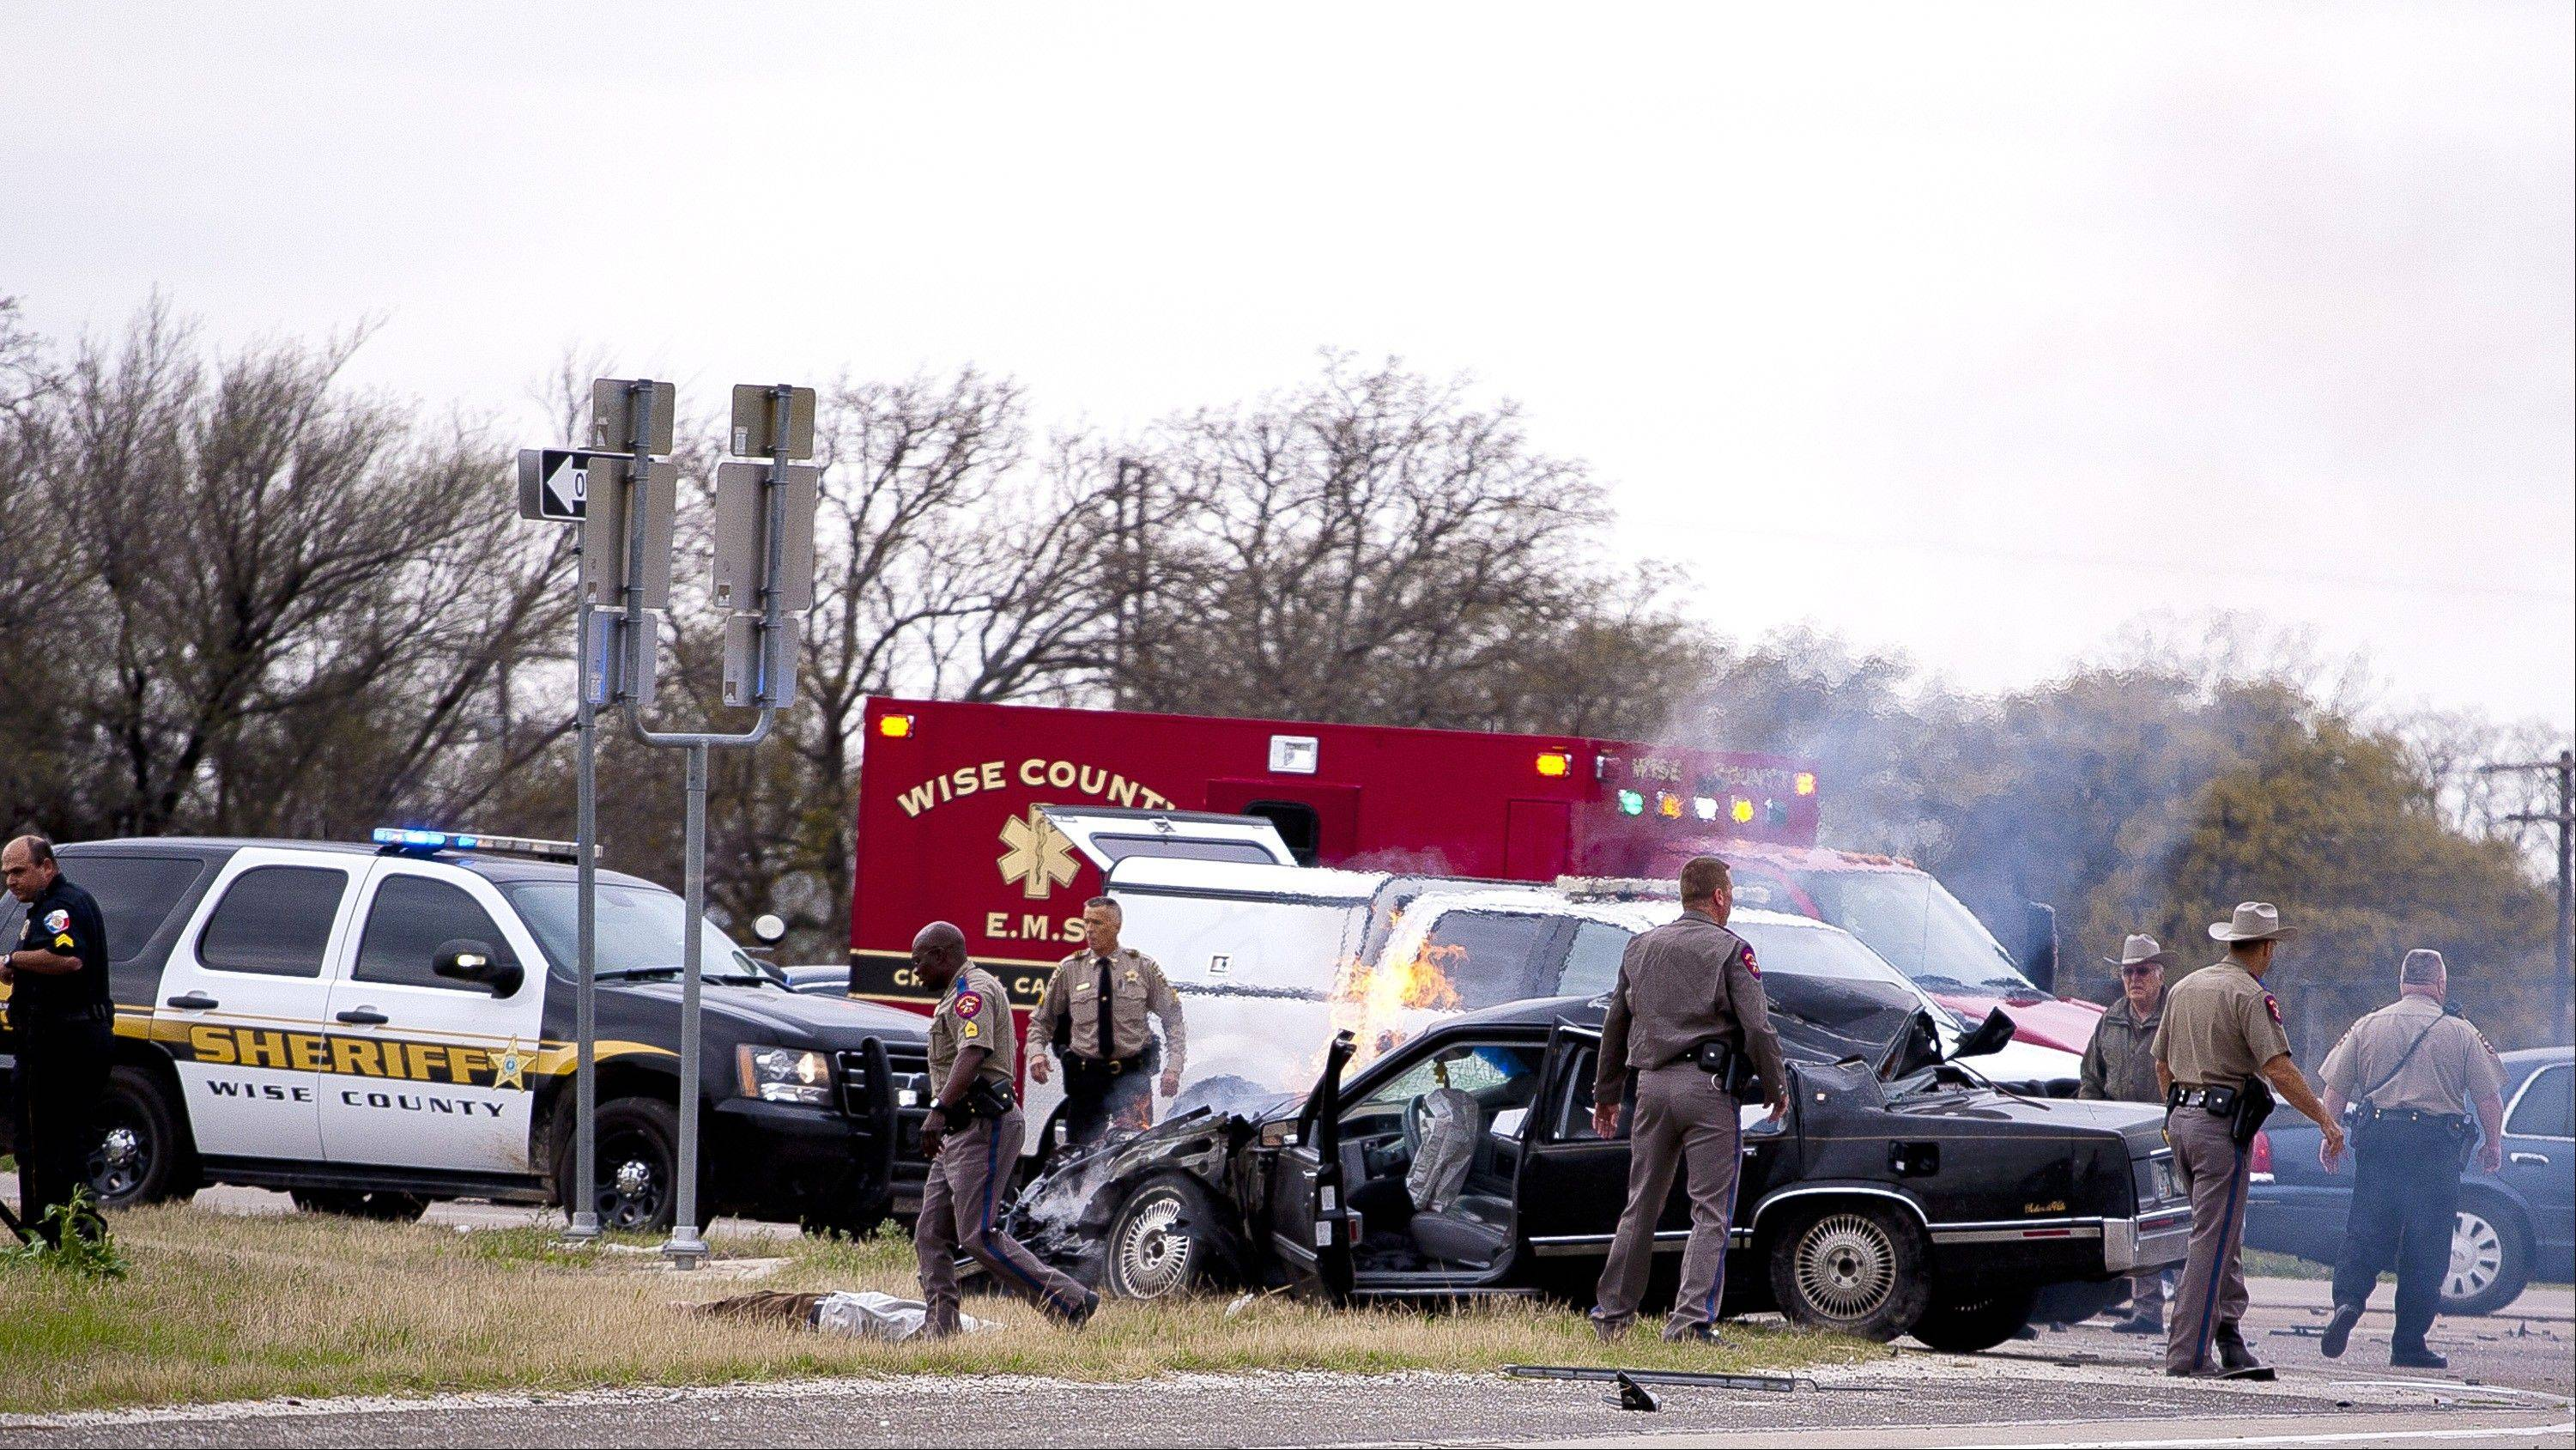 Emergency personnel on the scene of a crash and shootout with police involving the driver of a black Cadillac with Colorado plates in Decatur, Texas, Thursday, March 21, 2013. Investigators from three Colorado police agencies rushed to Texas to determine if a man identified as a parolee, who was critically wounded by Texas police after a harrowing 100-mph car chase, is linked to the slaying of Colorado's state prisons chief.